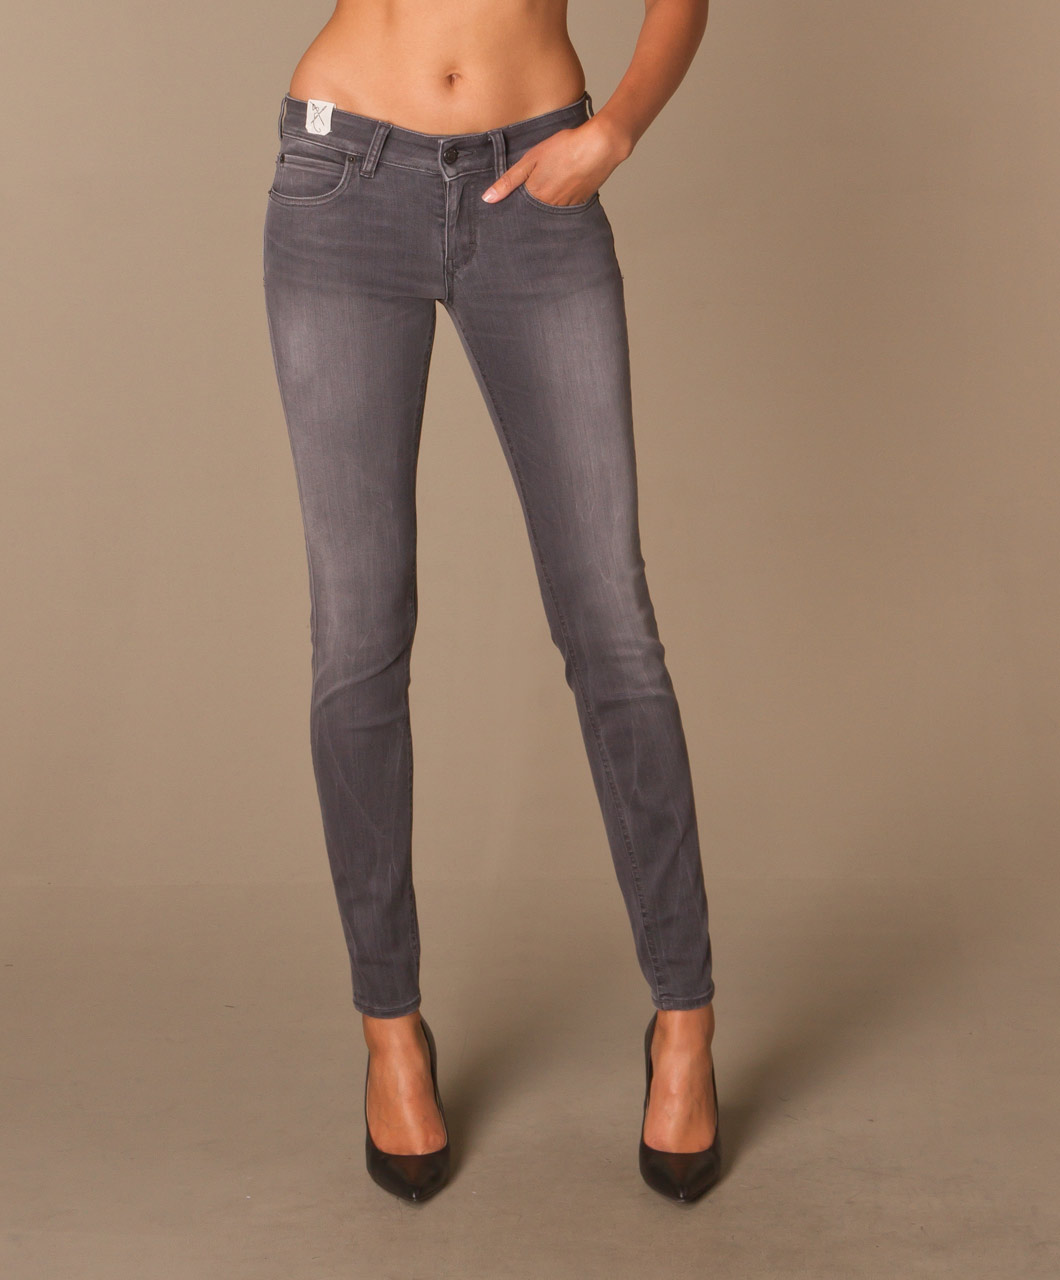 Free shipping and returns on Men's Grey Wash Jeans & Denim at qrqceh.tk